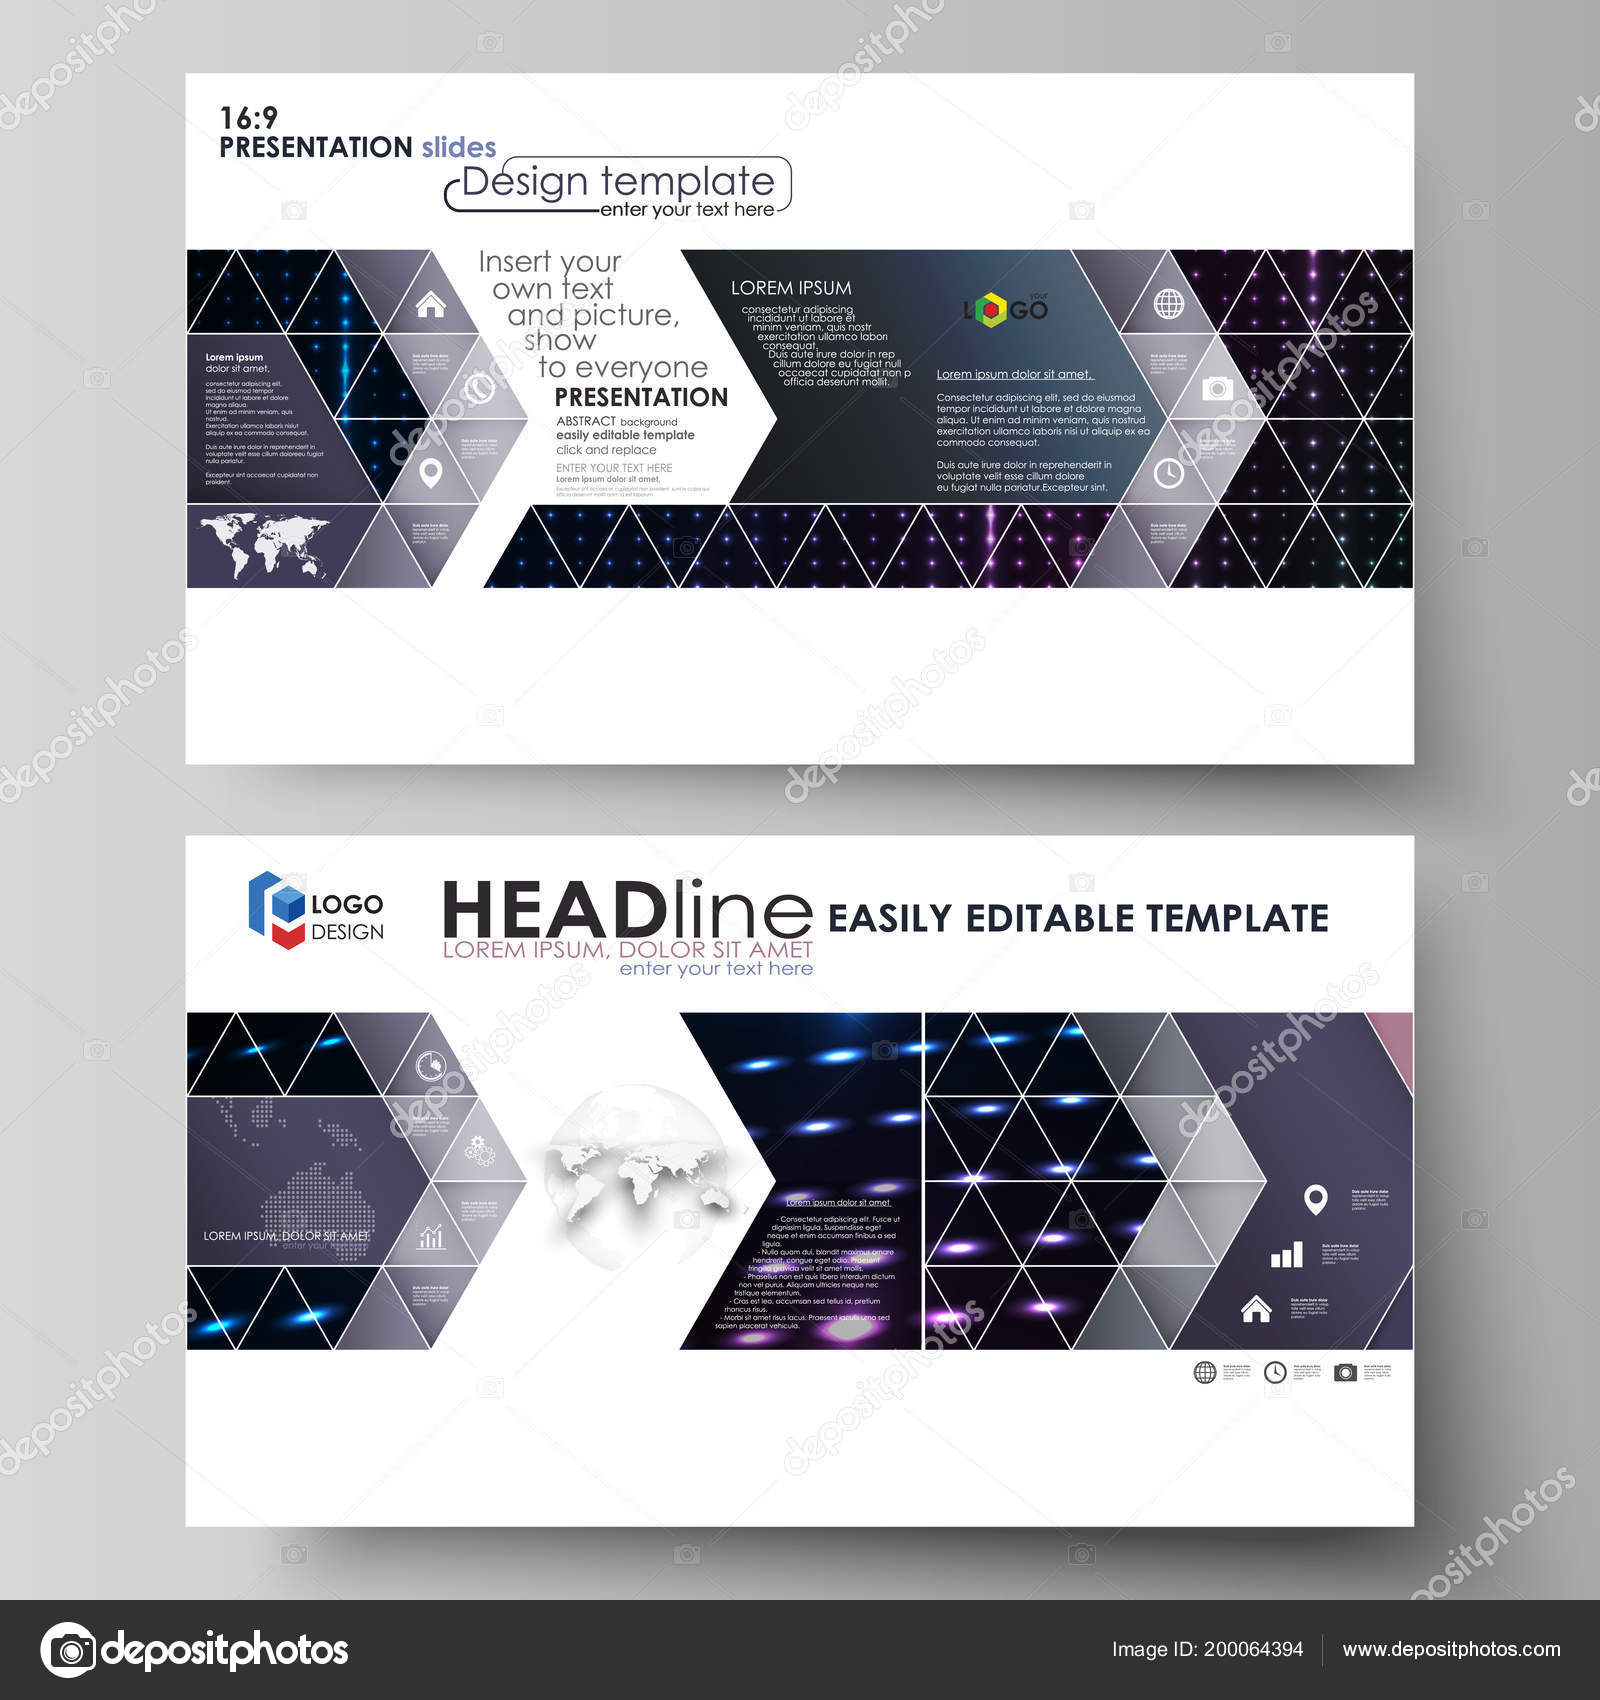 Business templates in HD format for presentation slides Layouts in